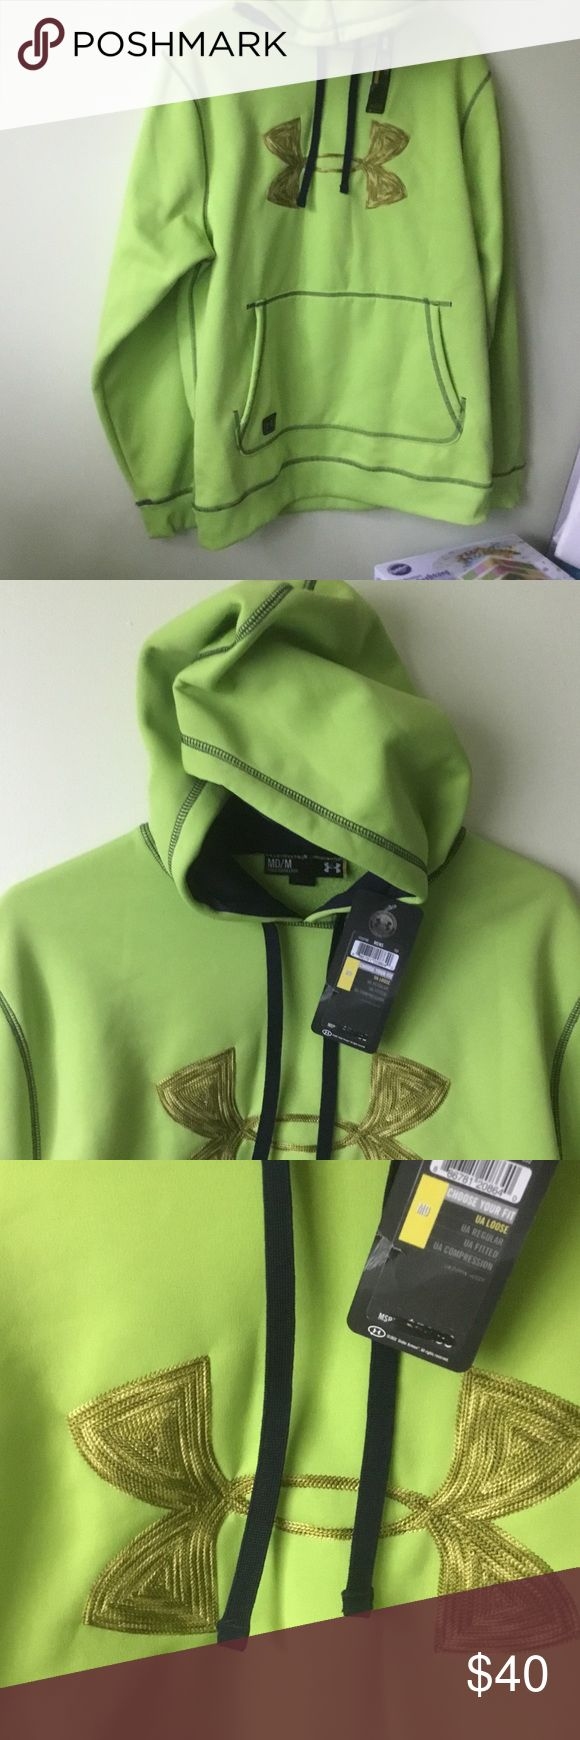 NEW UNDER ARMOUR  HOODIE. M. New UNDER ARMOUR lime    HOODIE. green smoke and pet free home Under Armour Shirts Sweatshirts & Hoodies